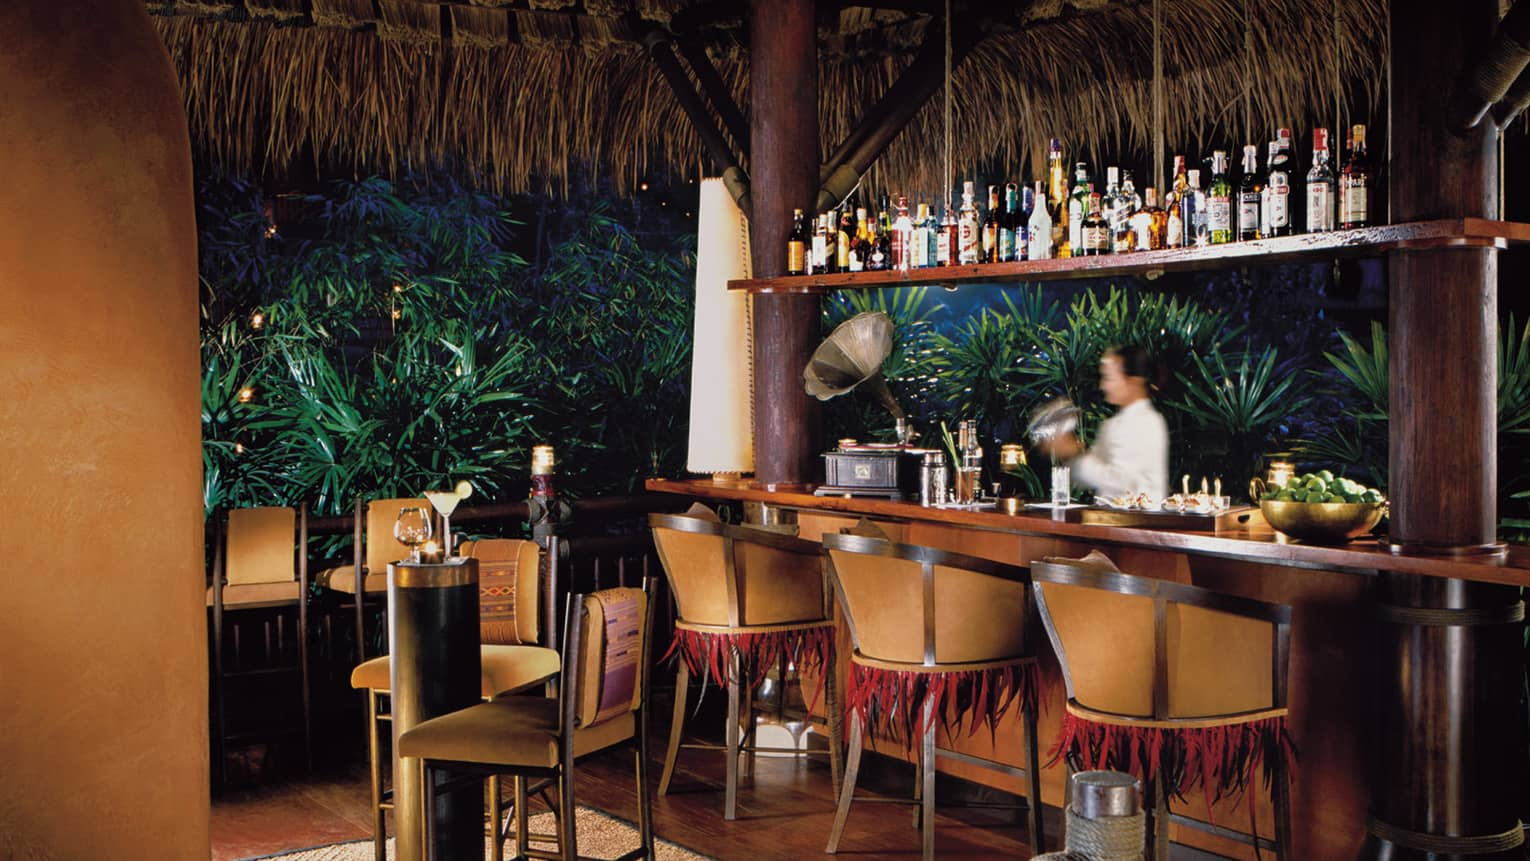 Bartender at Burma Bar with wood stools, tables under thatched-roof at night